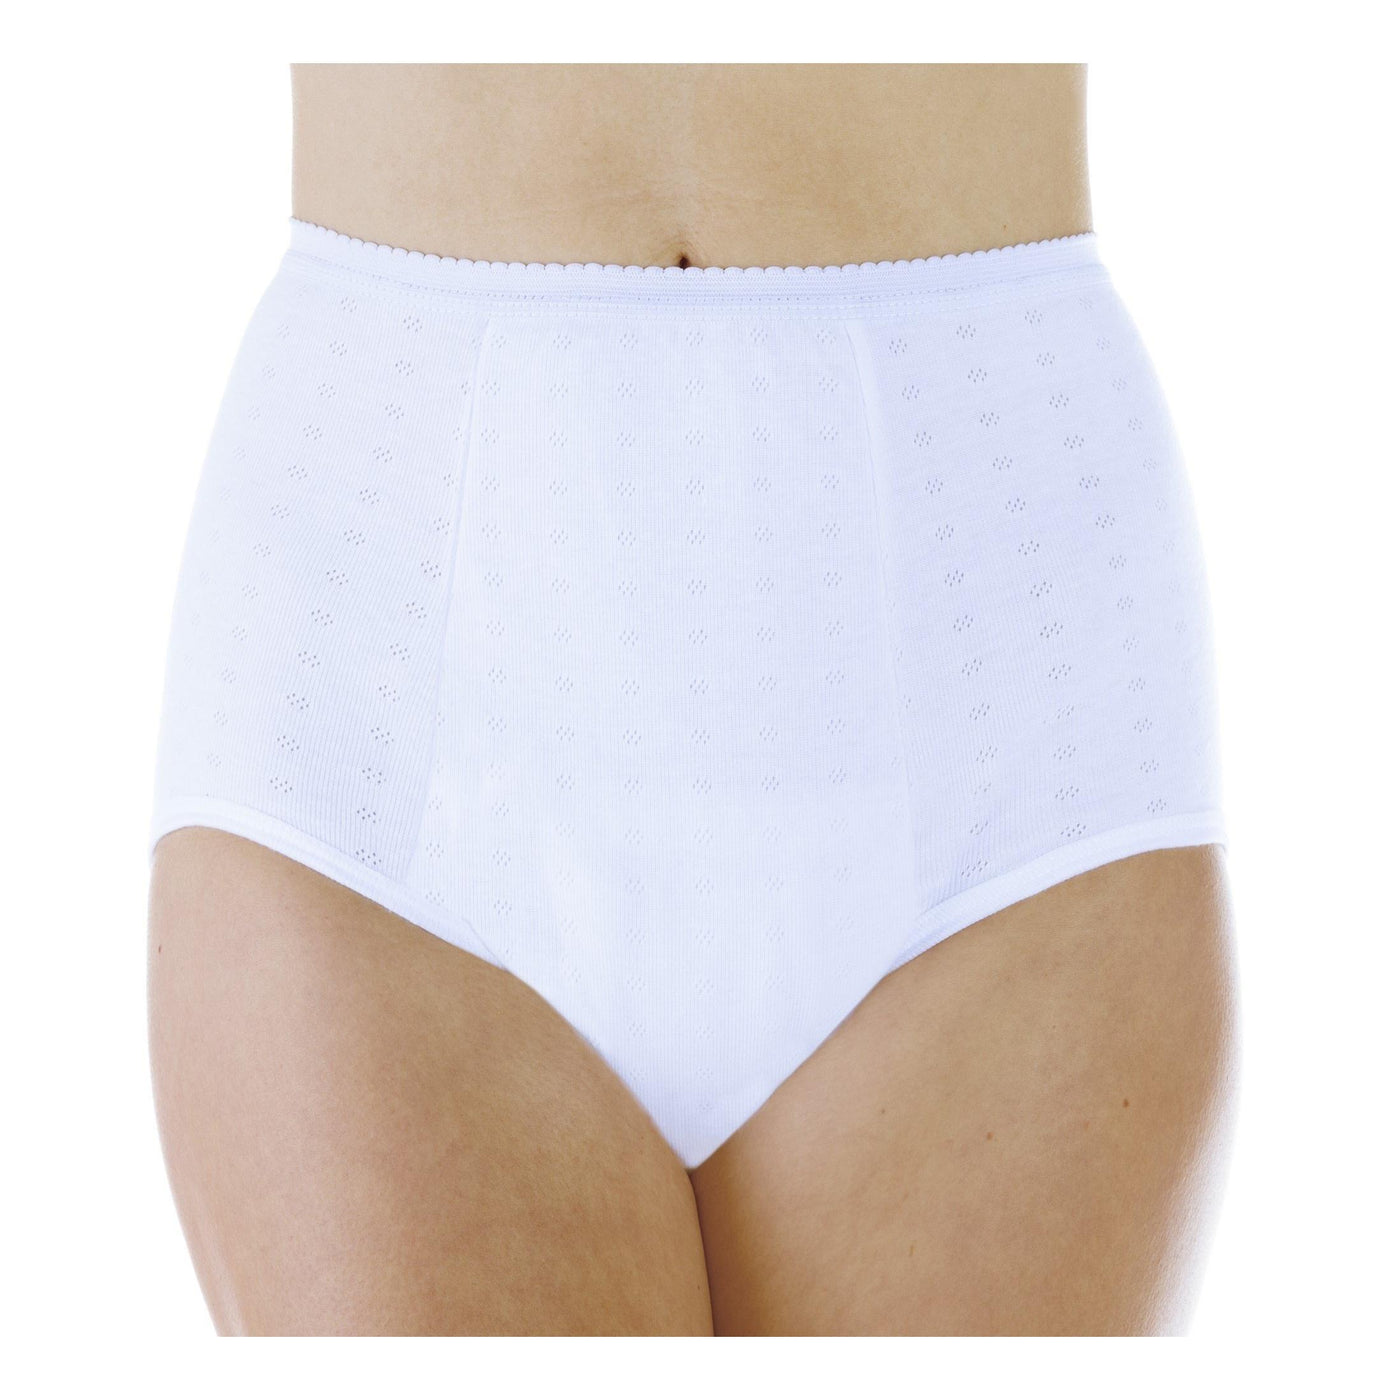 Washable Absorbent Bladder Leak Control Women S Underwear Hold 20 Oz Maximum Absorbency From Wearever Canada Myliberty Life